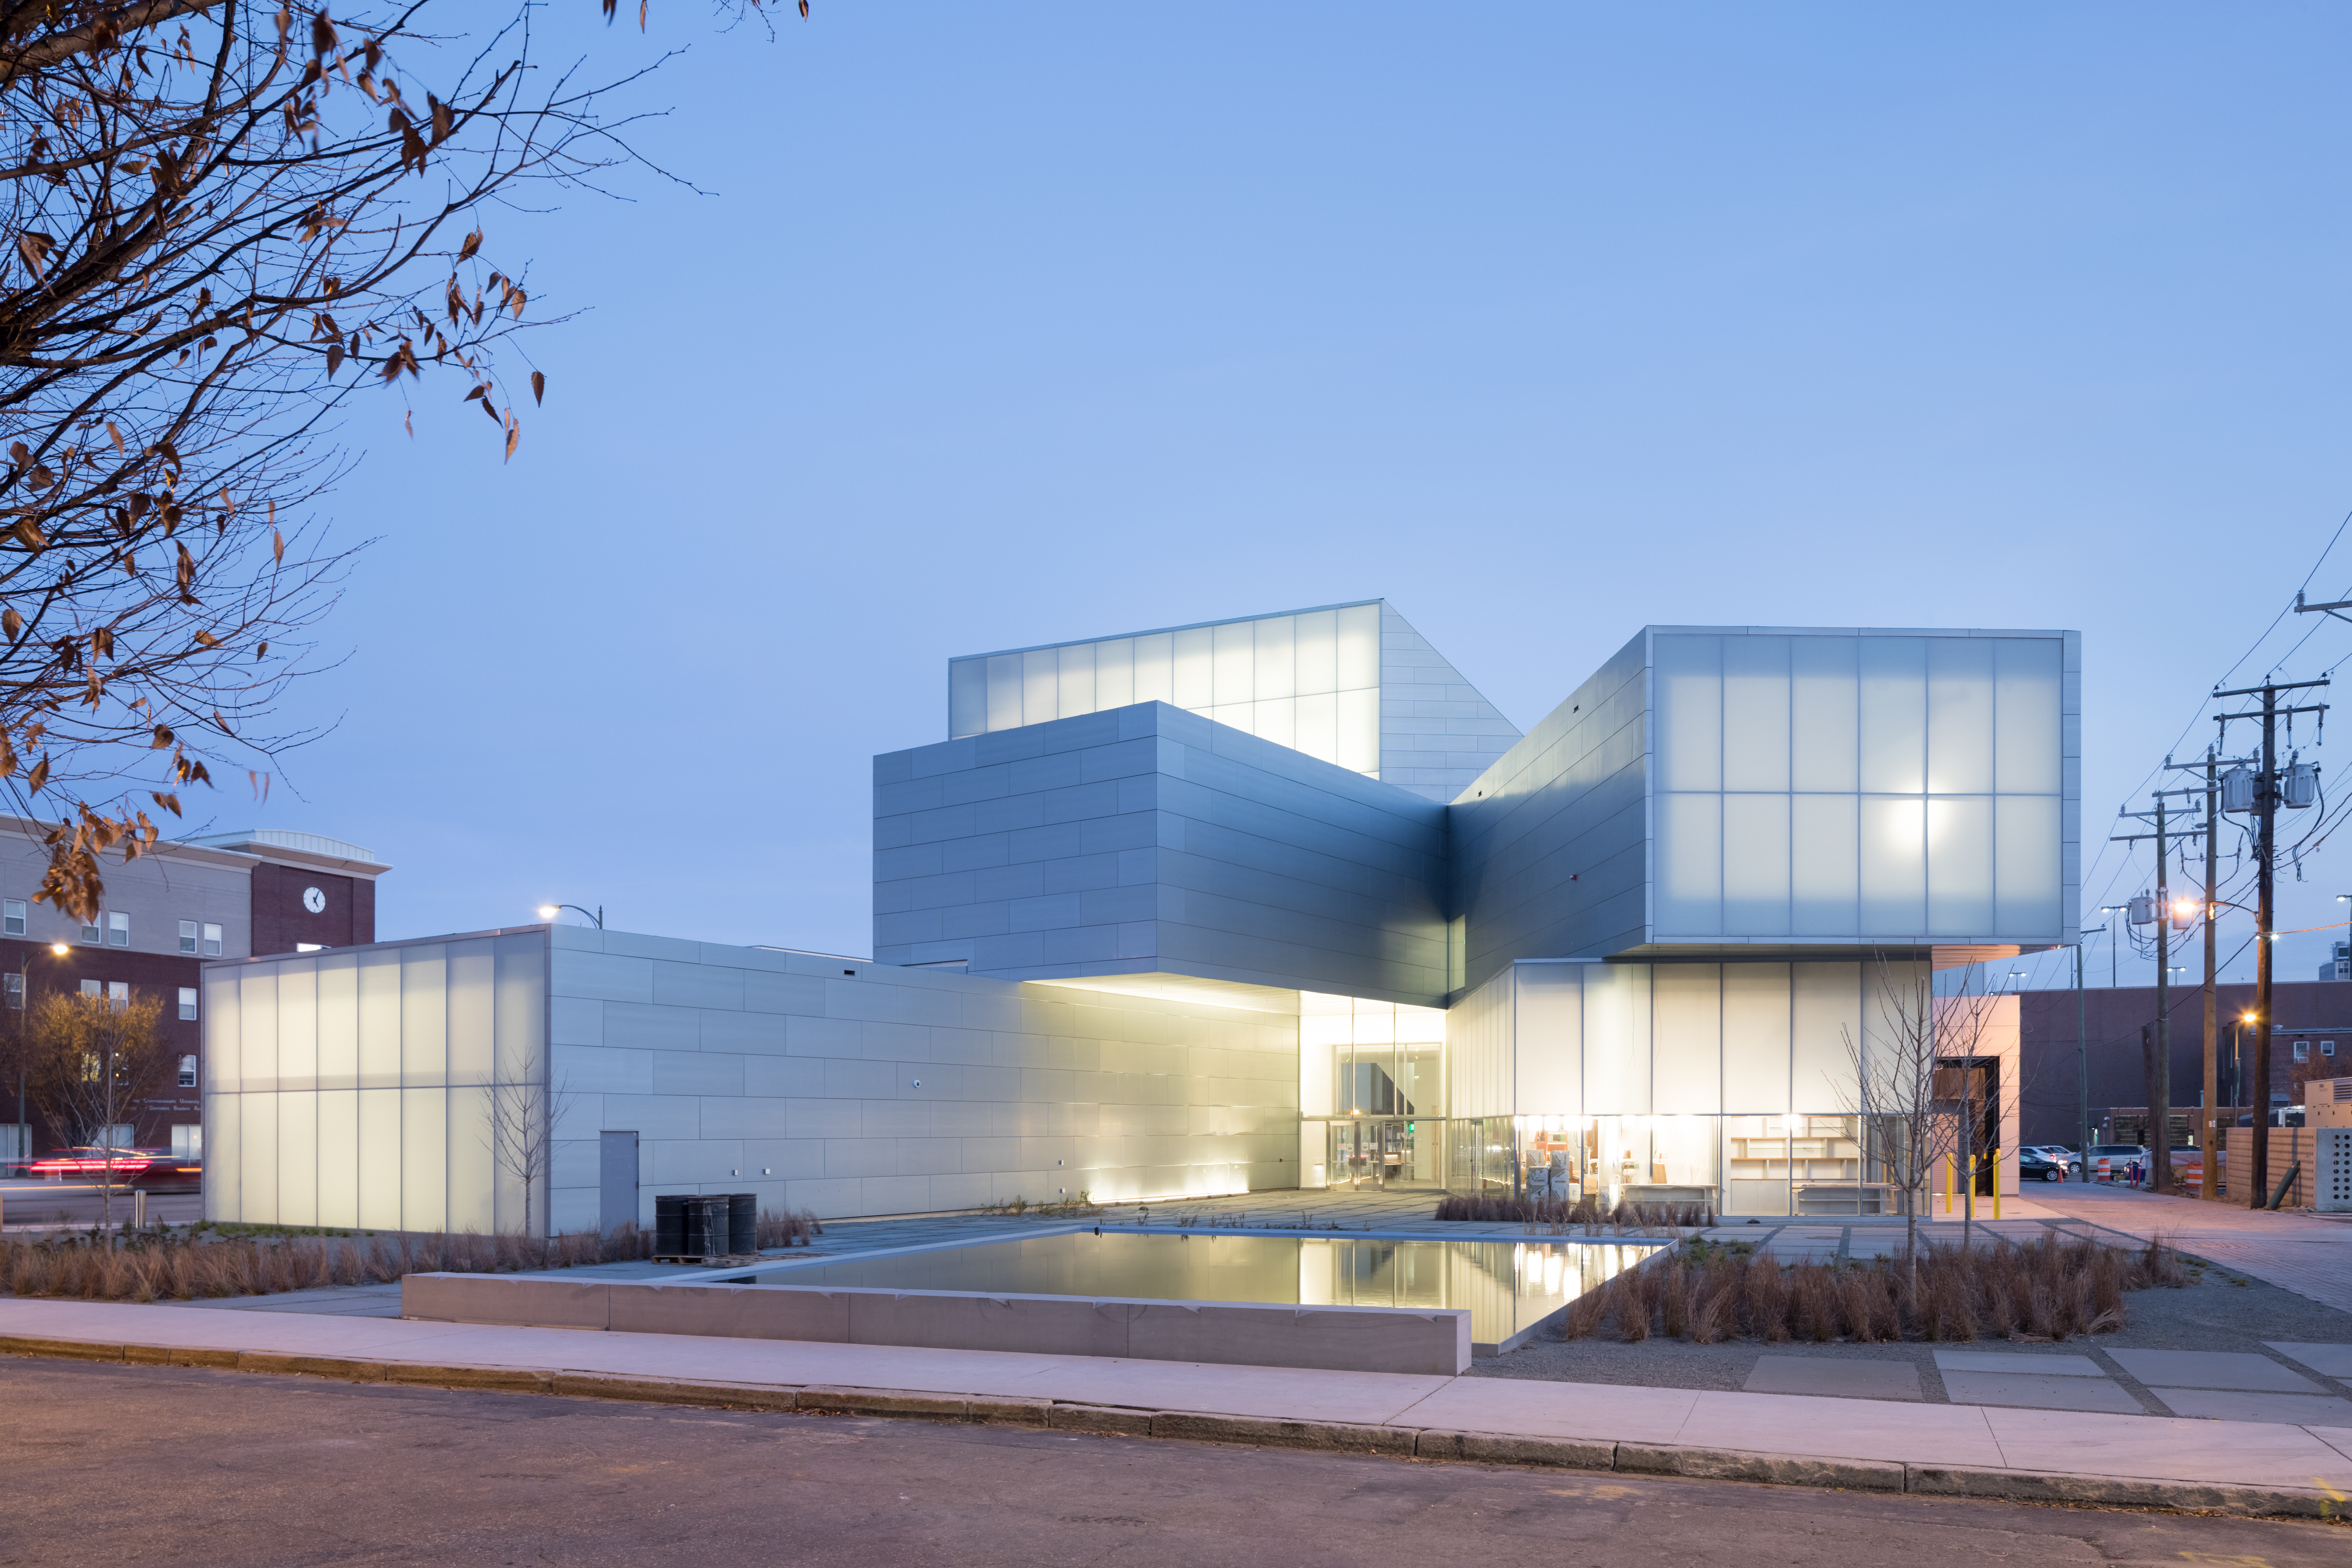 <p>Beeld Iwan Baan. Insitute for Contemporary Art, Richmond (VS) – Steven Holl Architects</p>